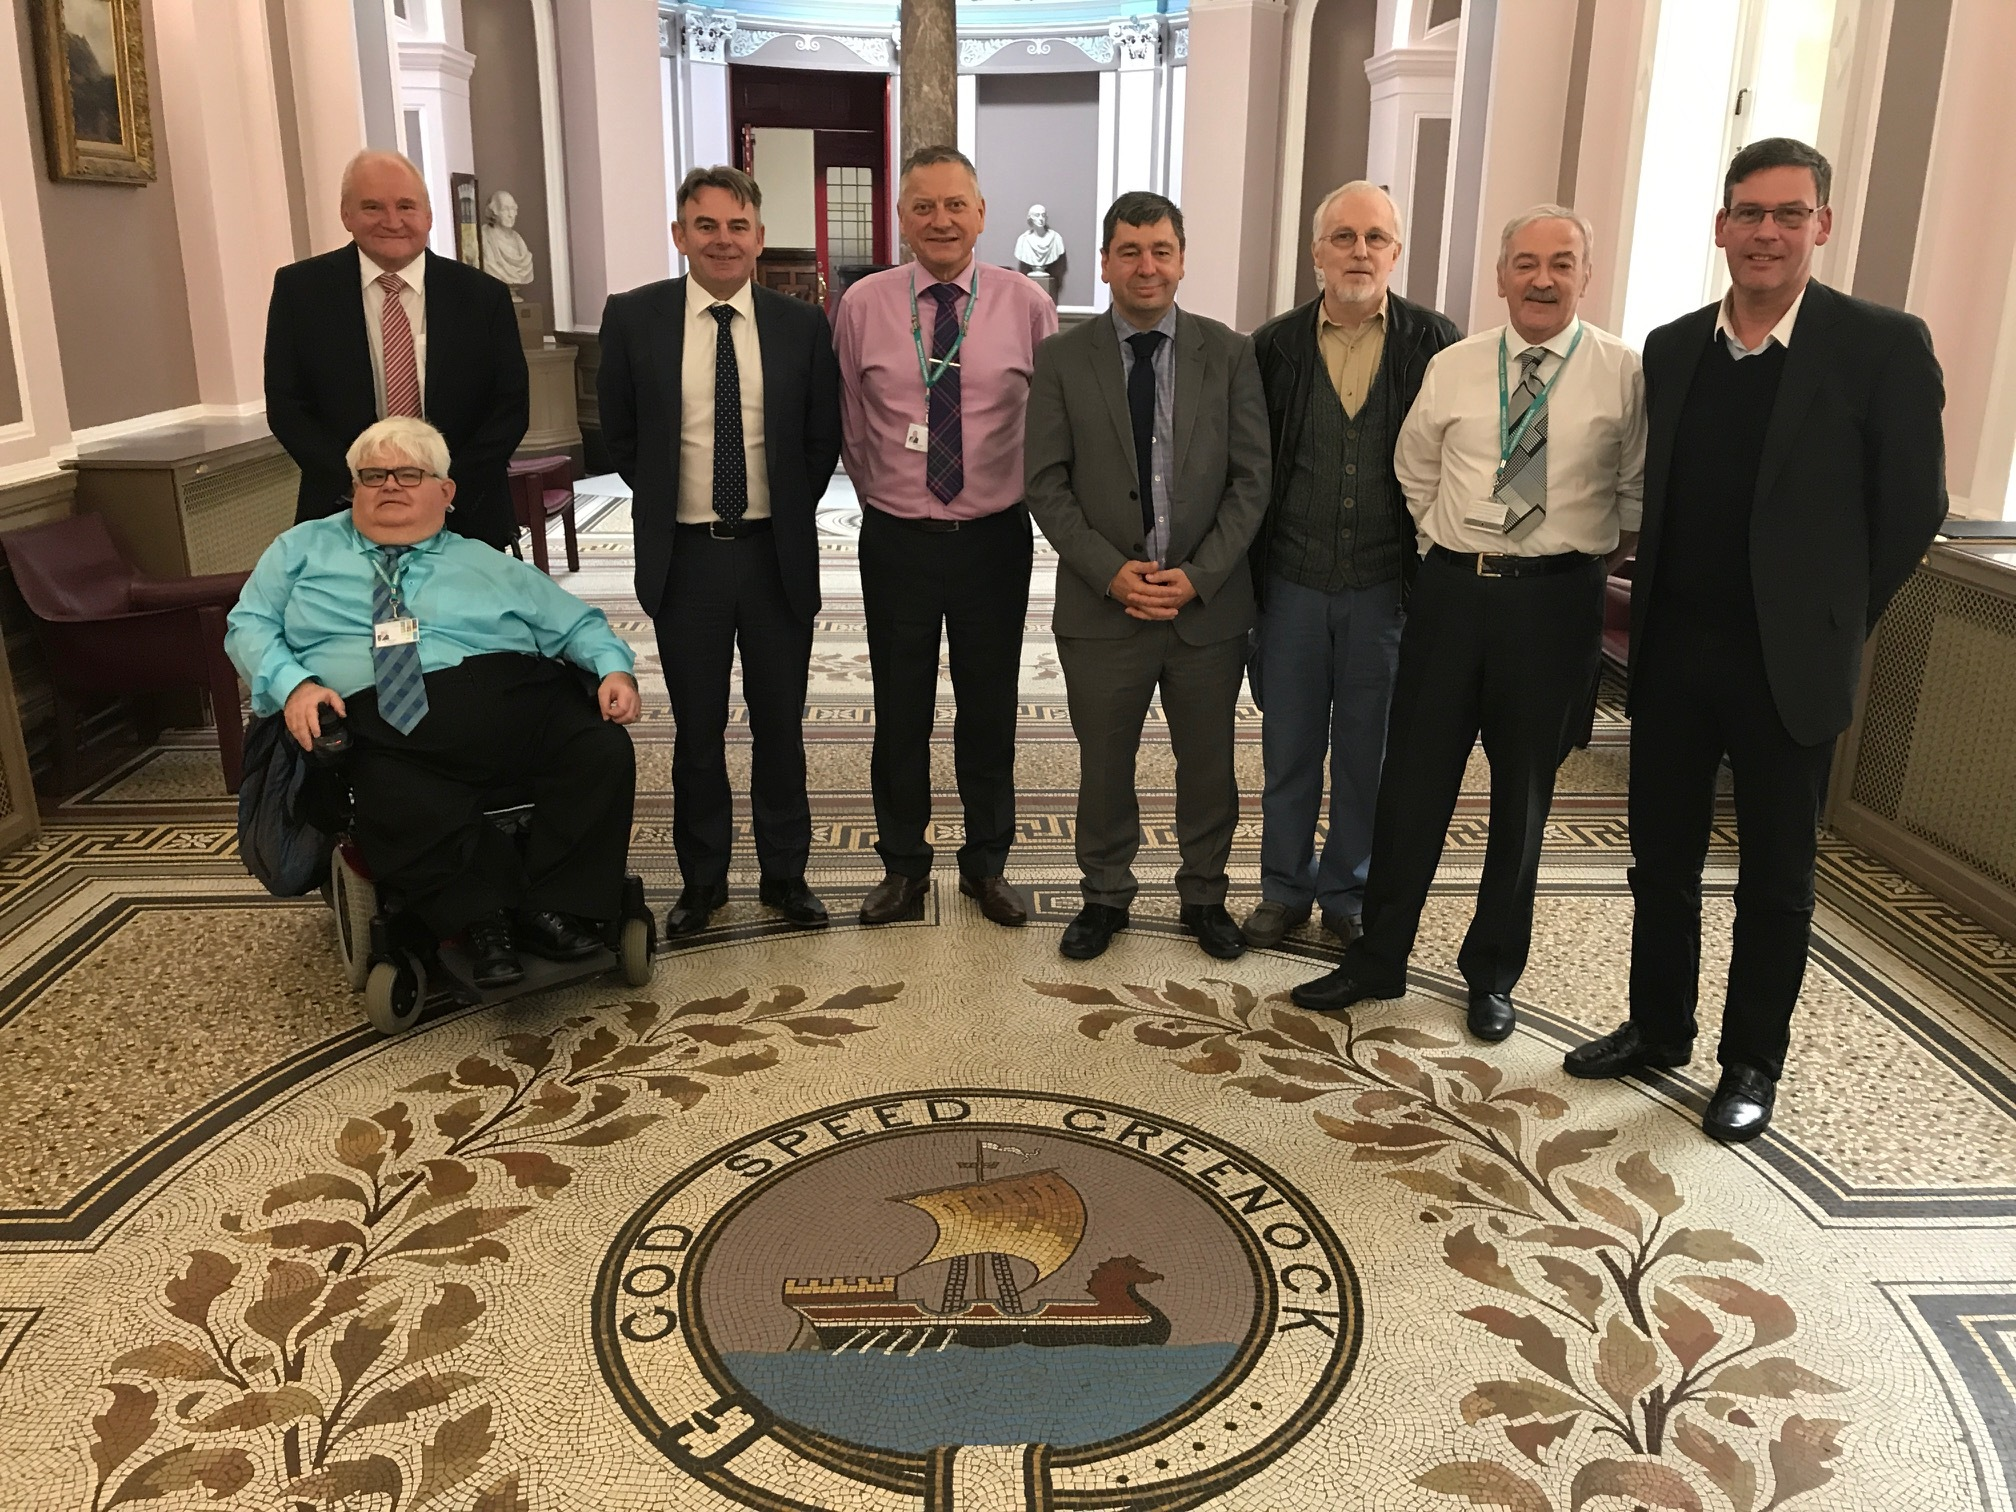 Representatives from Peel Ports and Cammell Laird meeting with Inverclyde councillors in Greenock to discuss Inchgreen Drydock. From left, Councillor Jim MacLeod, Mike Moran, director of Cammell Laird, John Syvret, chief executive of Cammell Laird, Counci